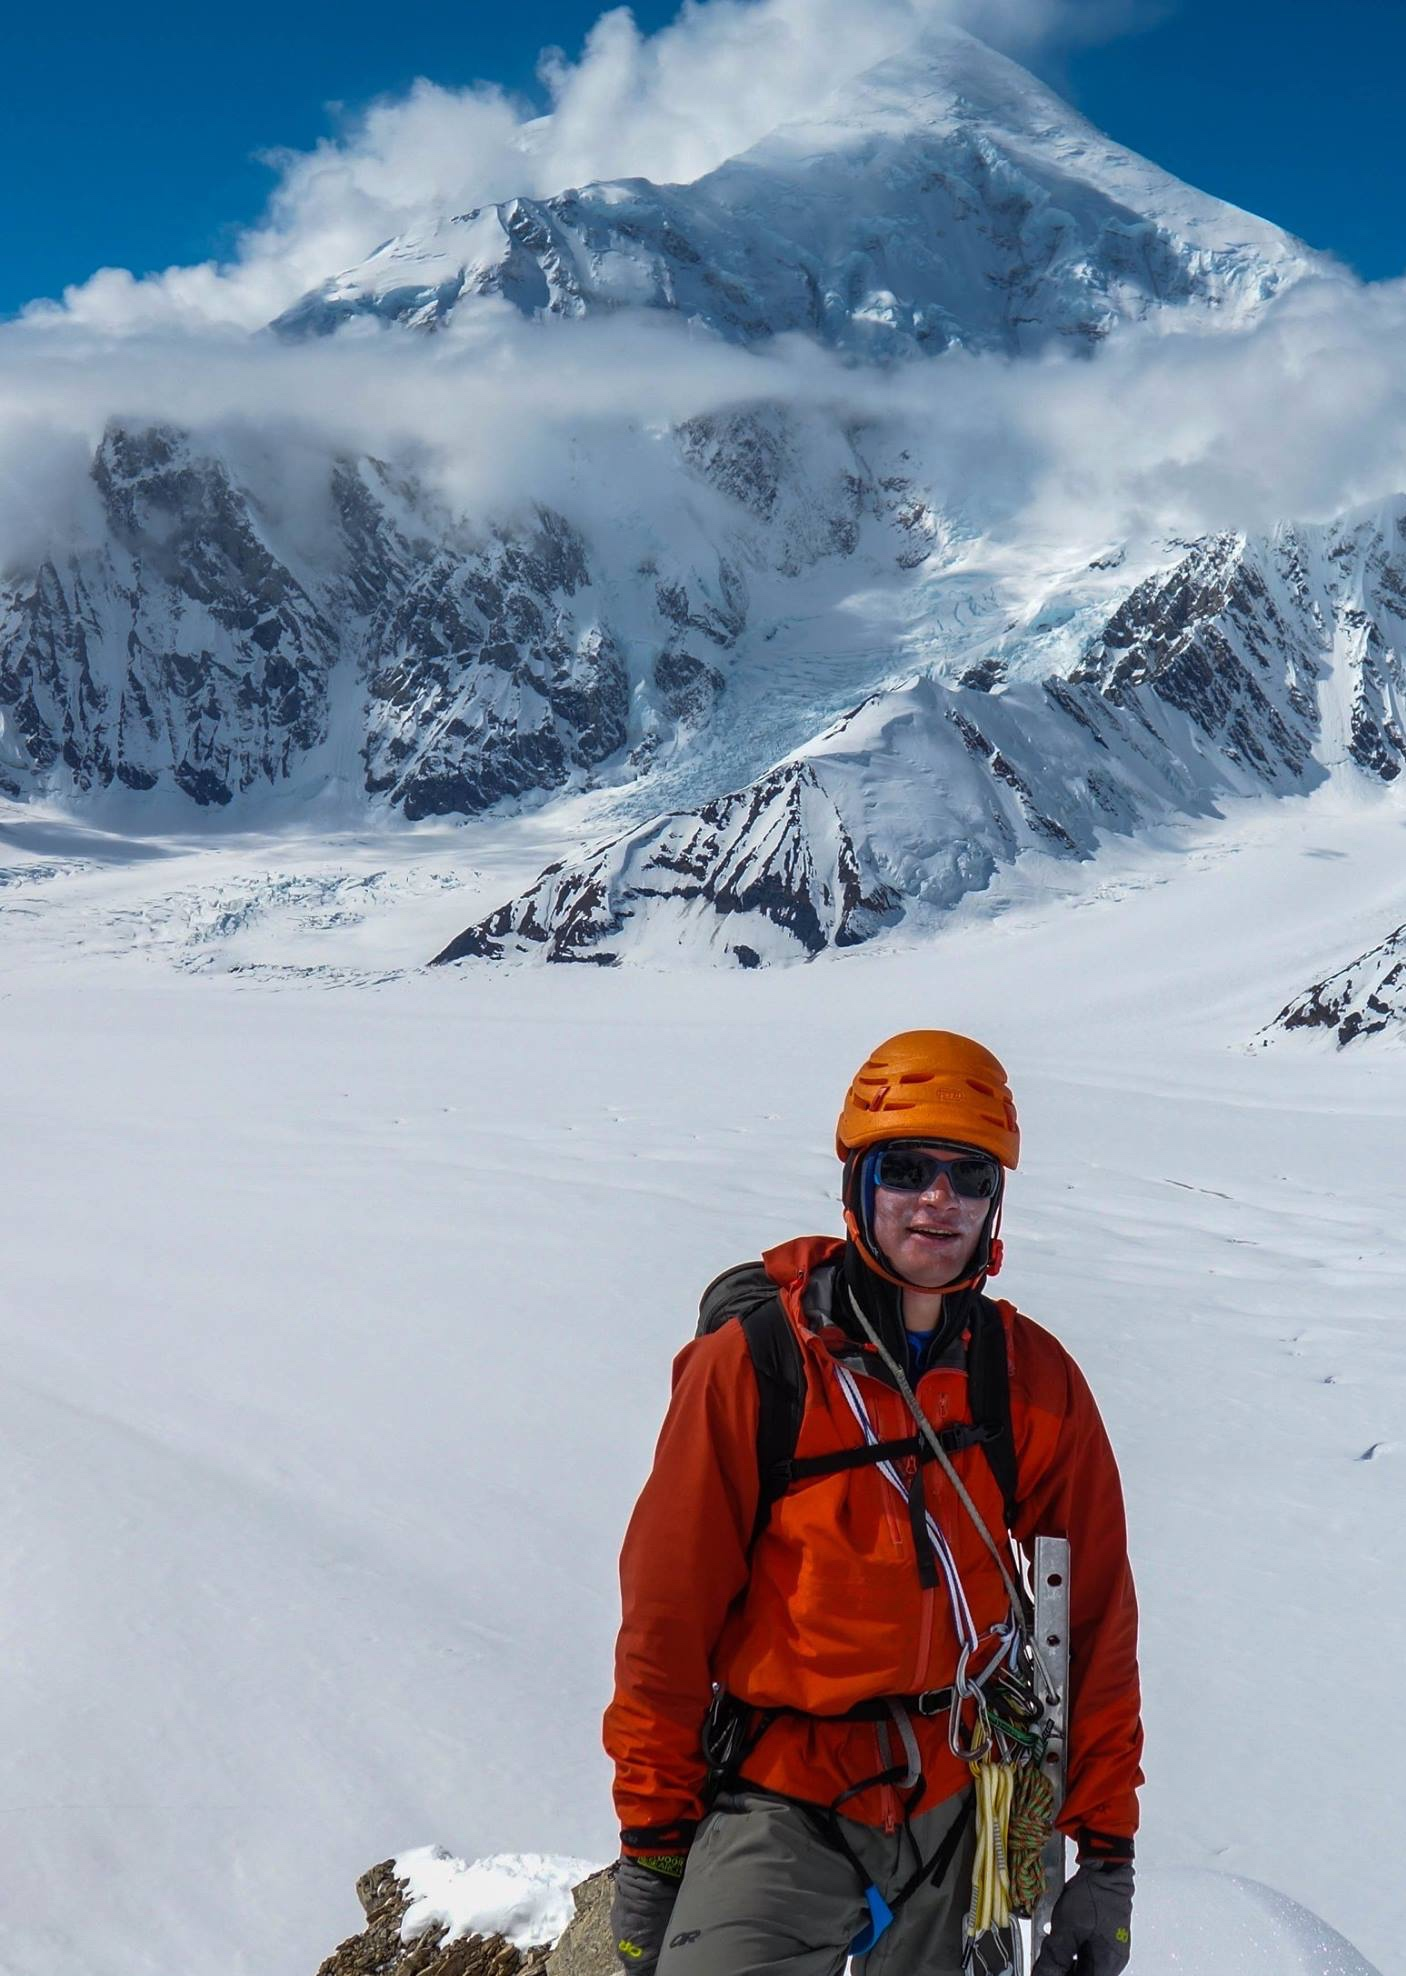 Commercial - Ryan Edwards - Ryan first worked for CCL in 2010 then took off a couple years to climb some of the worlds biggest mountains. He returned in 2015 to CCL and manages all commercial installations and projects in the high country. In his free time you will find him climbing, whether it is ice, rock or the gym. In 2016 he summited Denali in Alaska and plans to climb Mt. Patagonia this summer 2019.